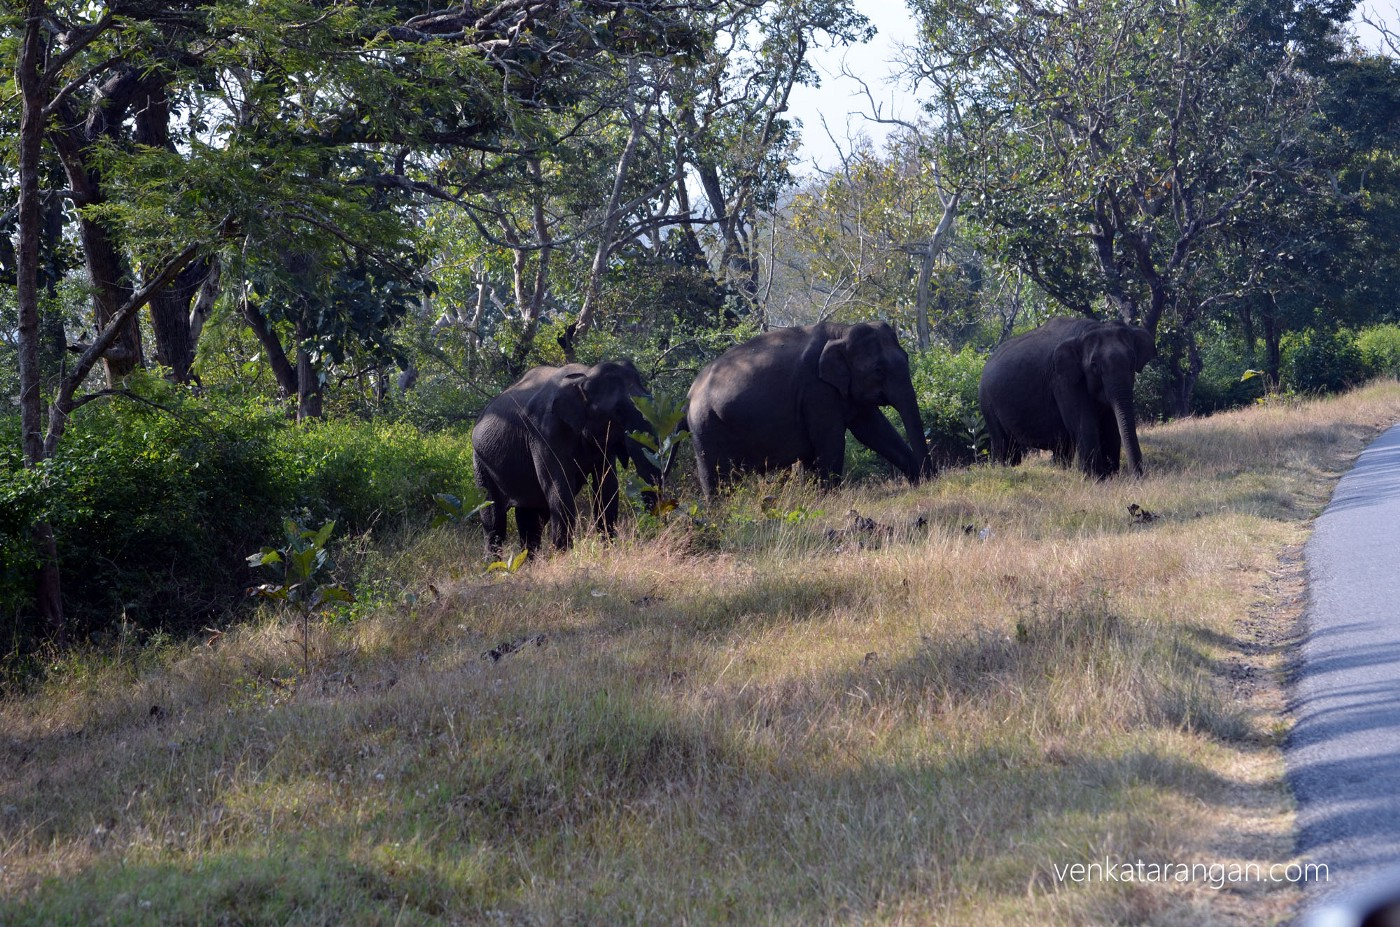 When driving in the forest, our host parked at safe distance whenever she saw a herd of elephants - our of respect for their habitat and safety